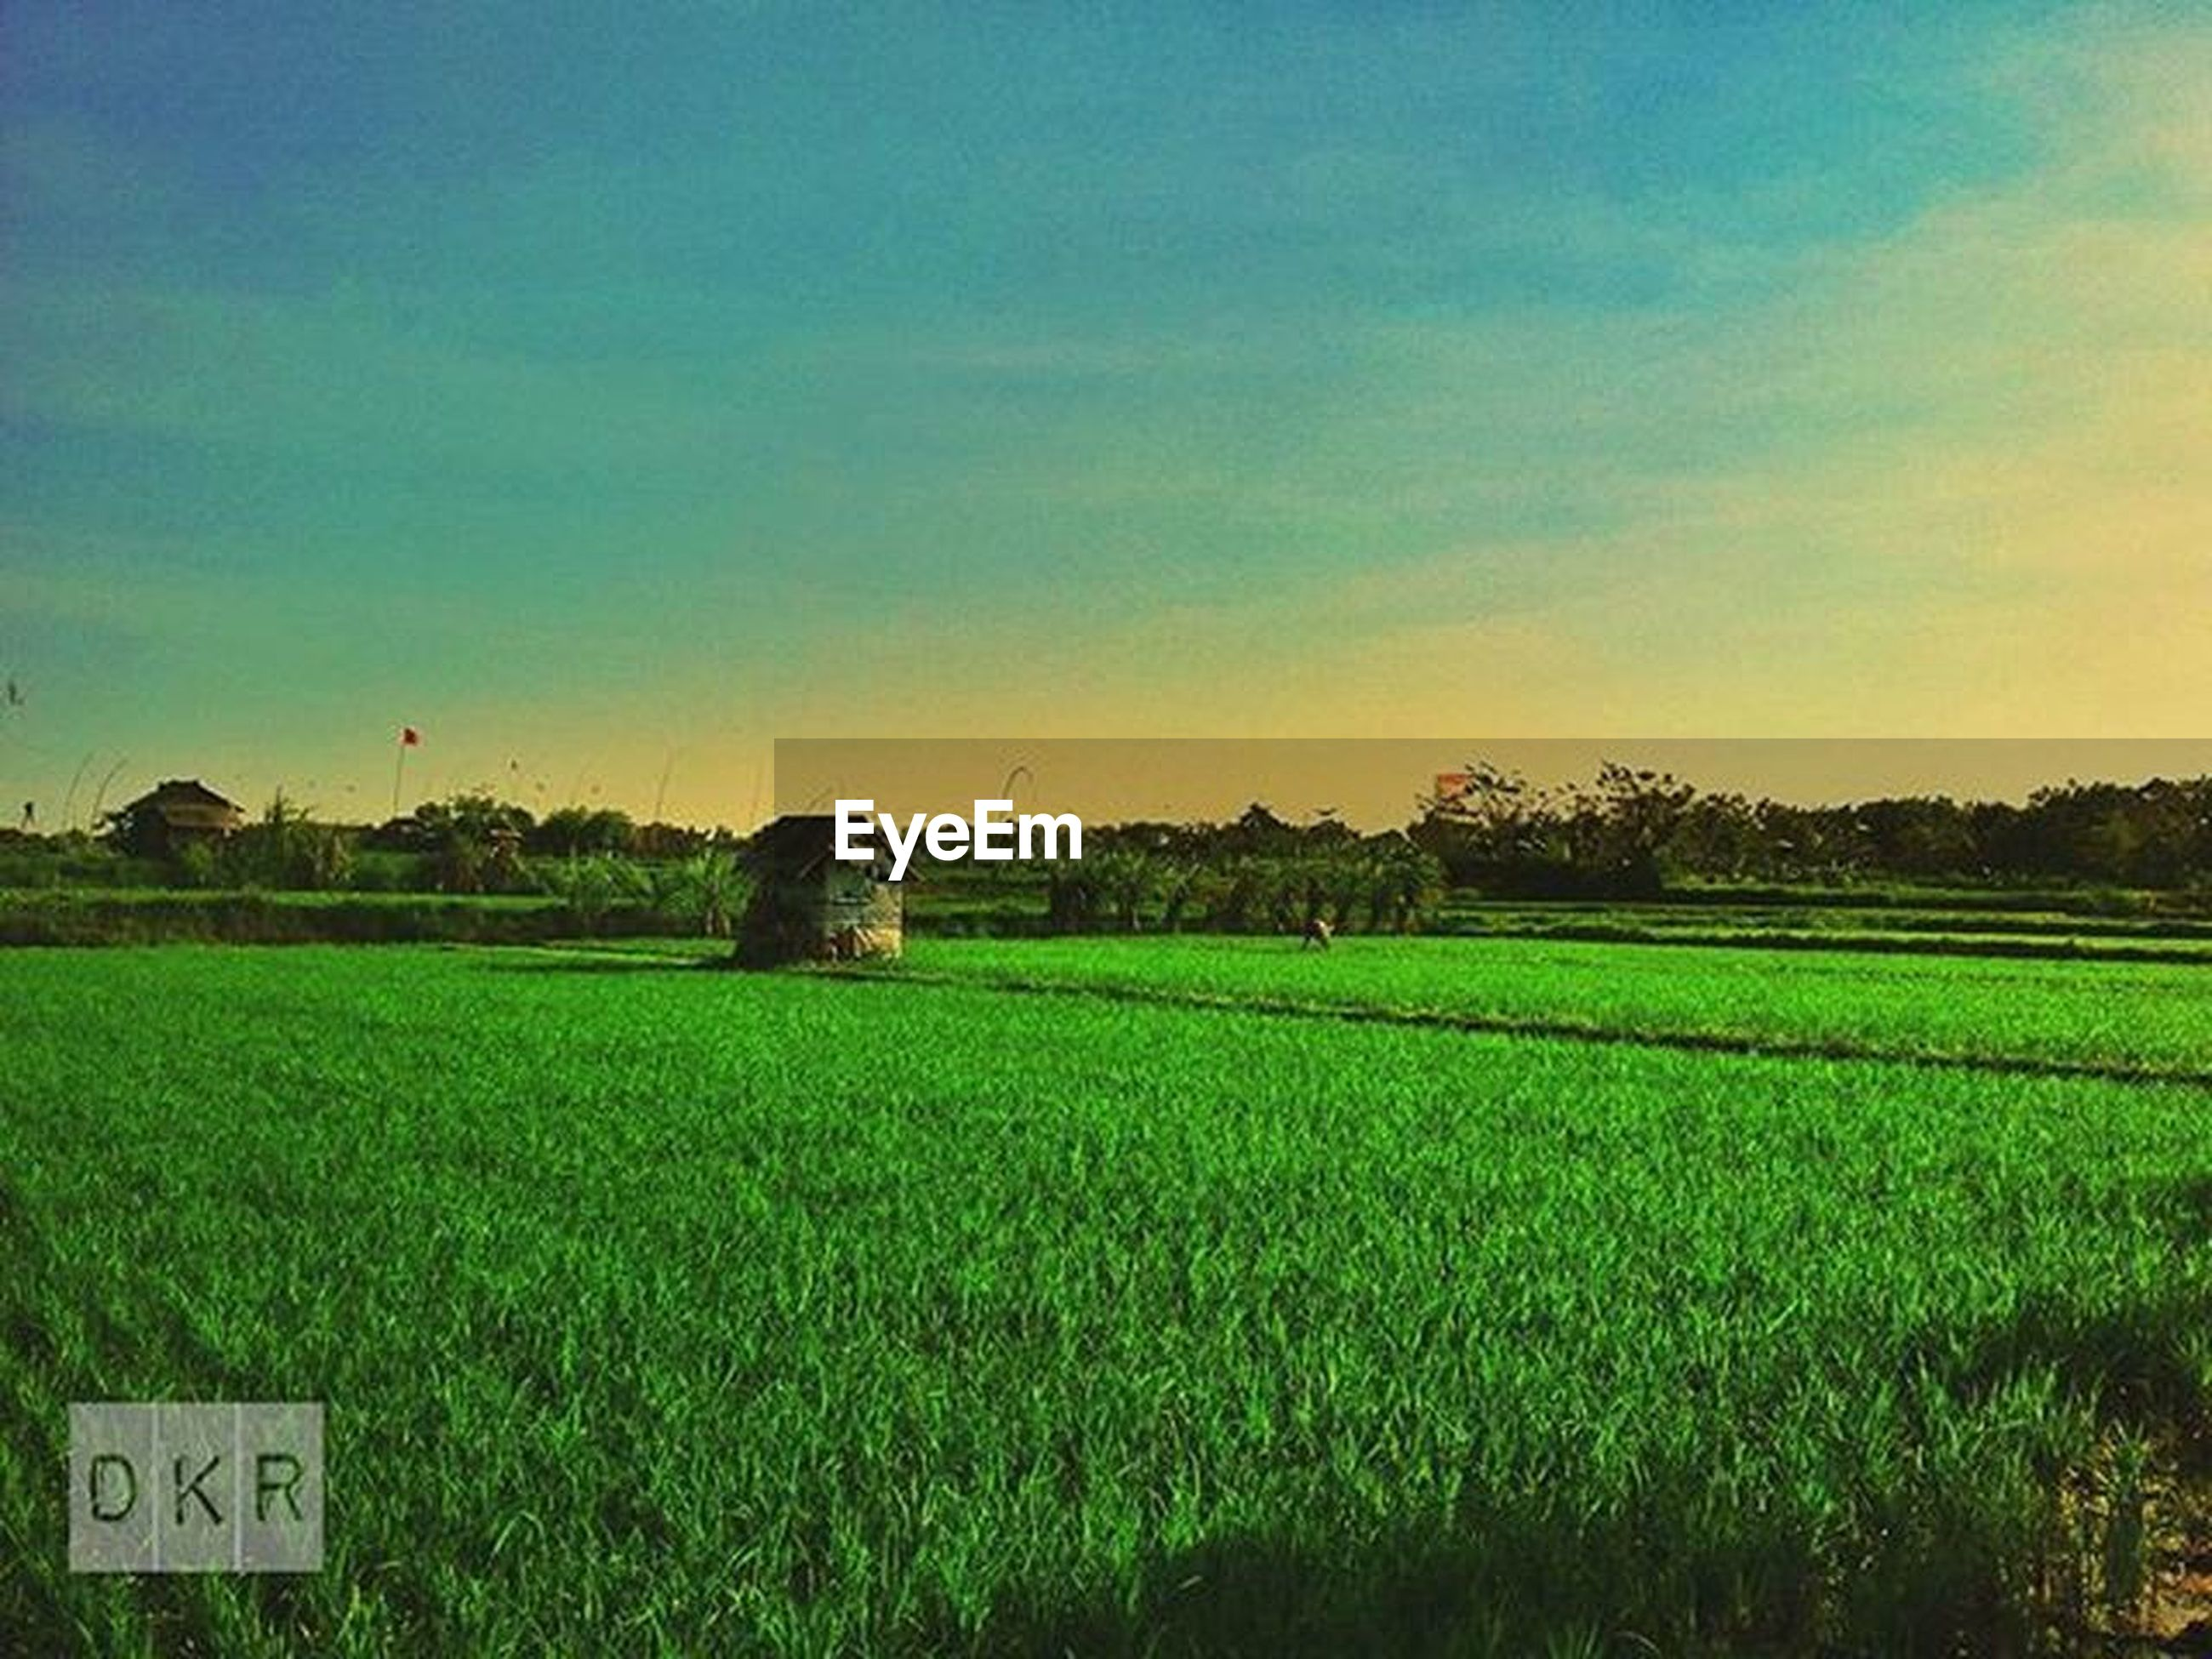 field, landscape, rural scene, agriculture, grass, tranquil scene, farm, tranquility, crop, sky, scenics, beauty in nature, growth, nature, cultivated land, sunset, grassy, green color, harvesting, idyllic